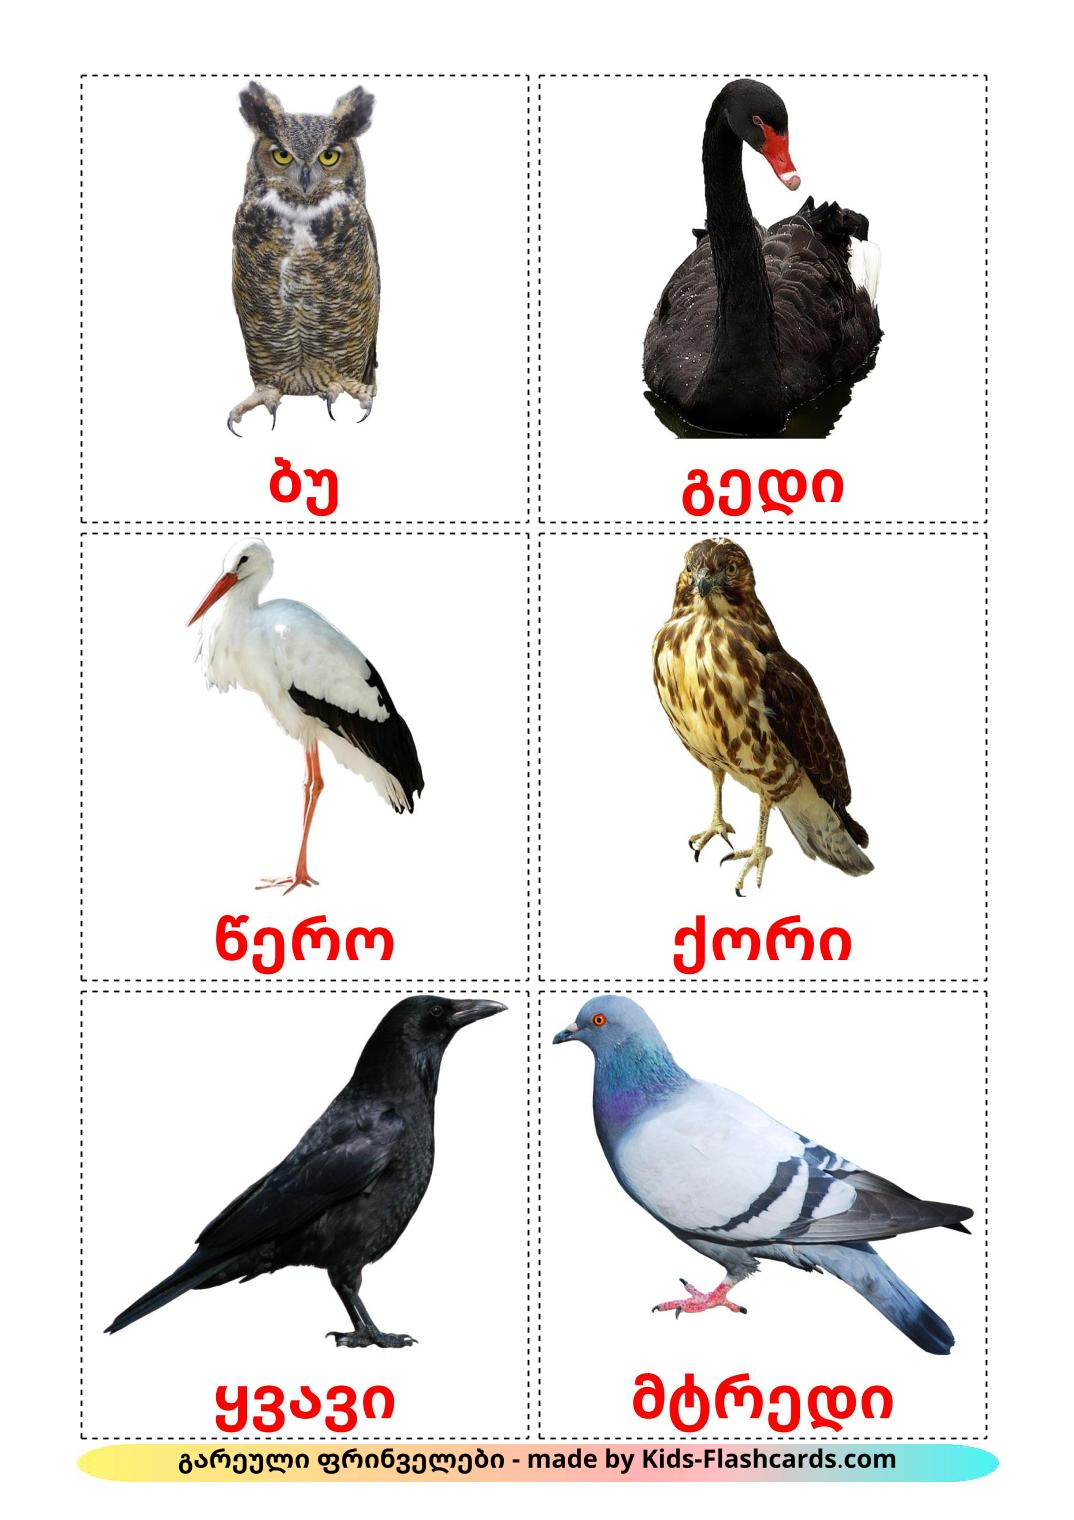 Wild birds - 18 Free Printable georgian Flashcards